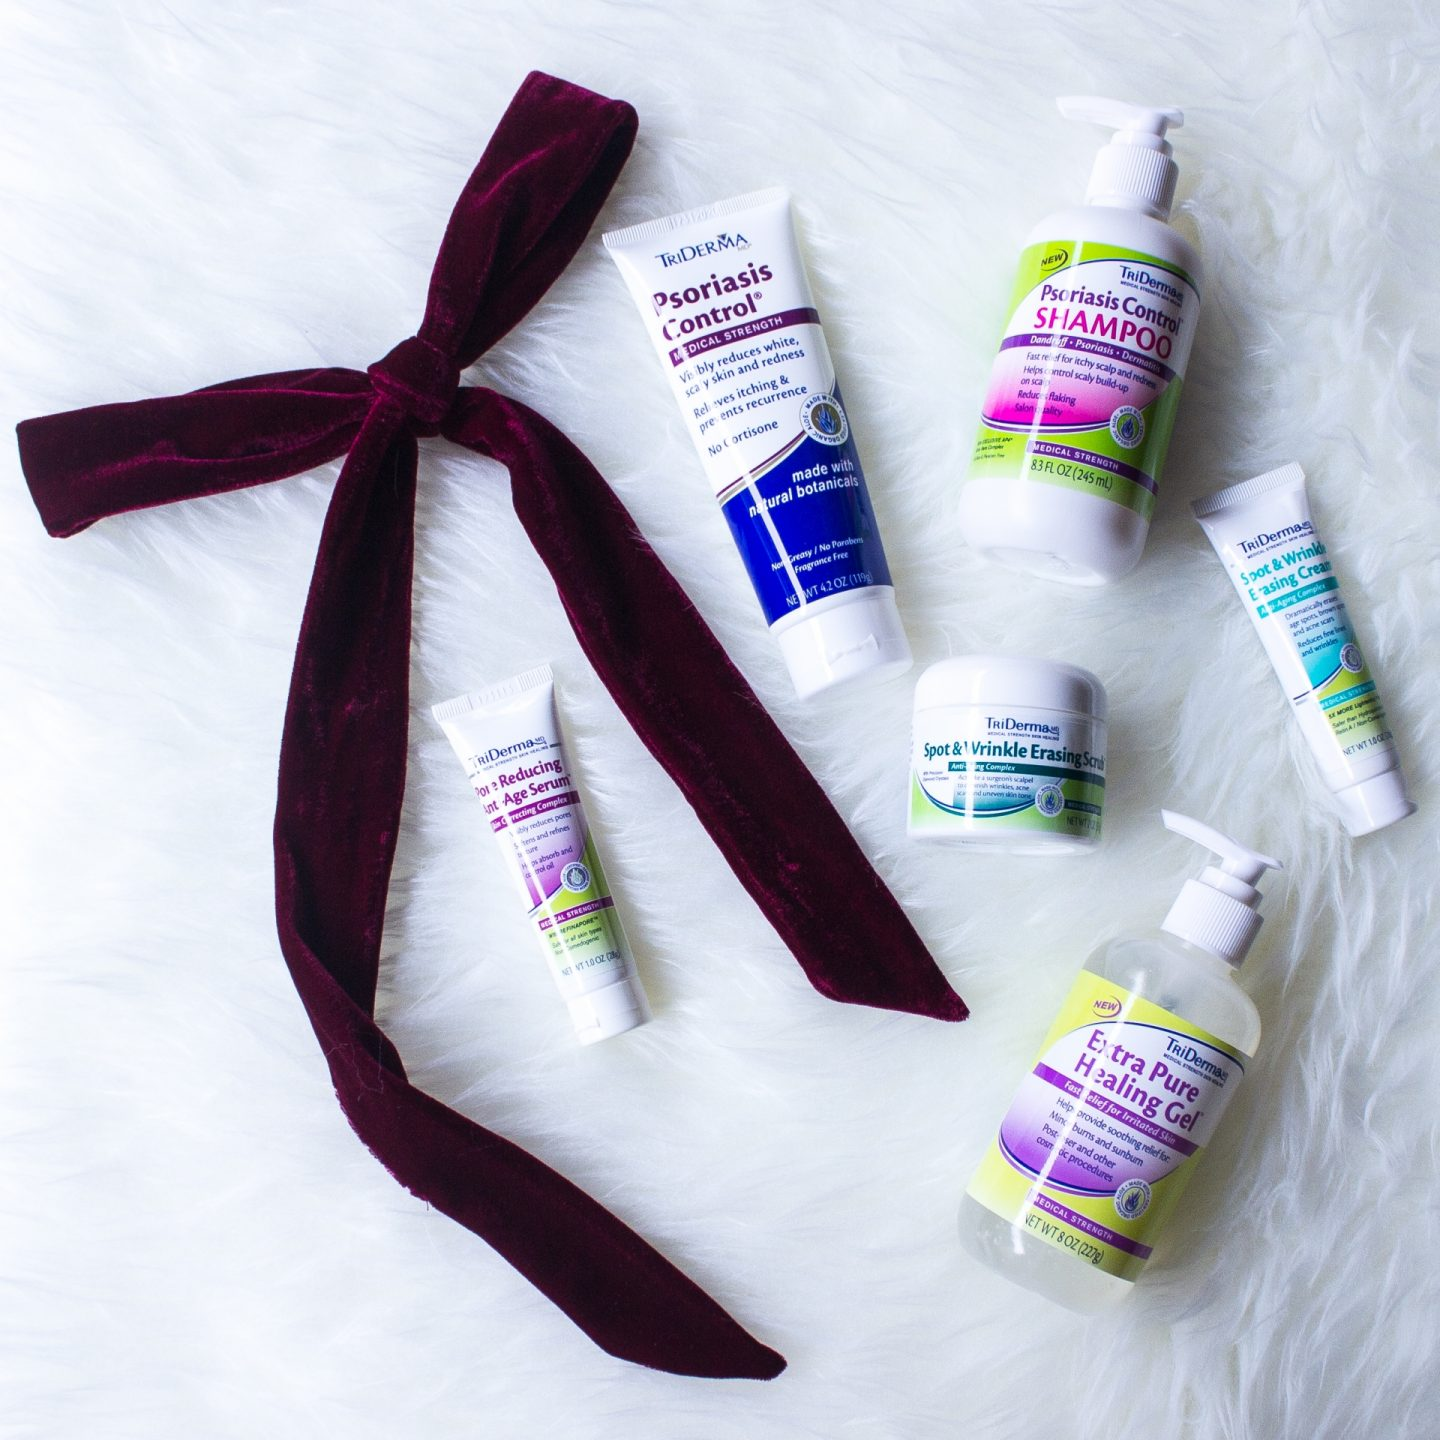 TriDerma Review: Botanical-Based Skin Care Products